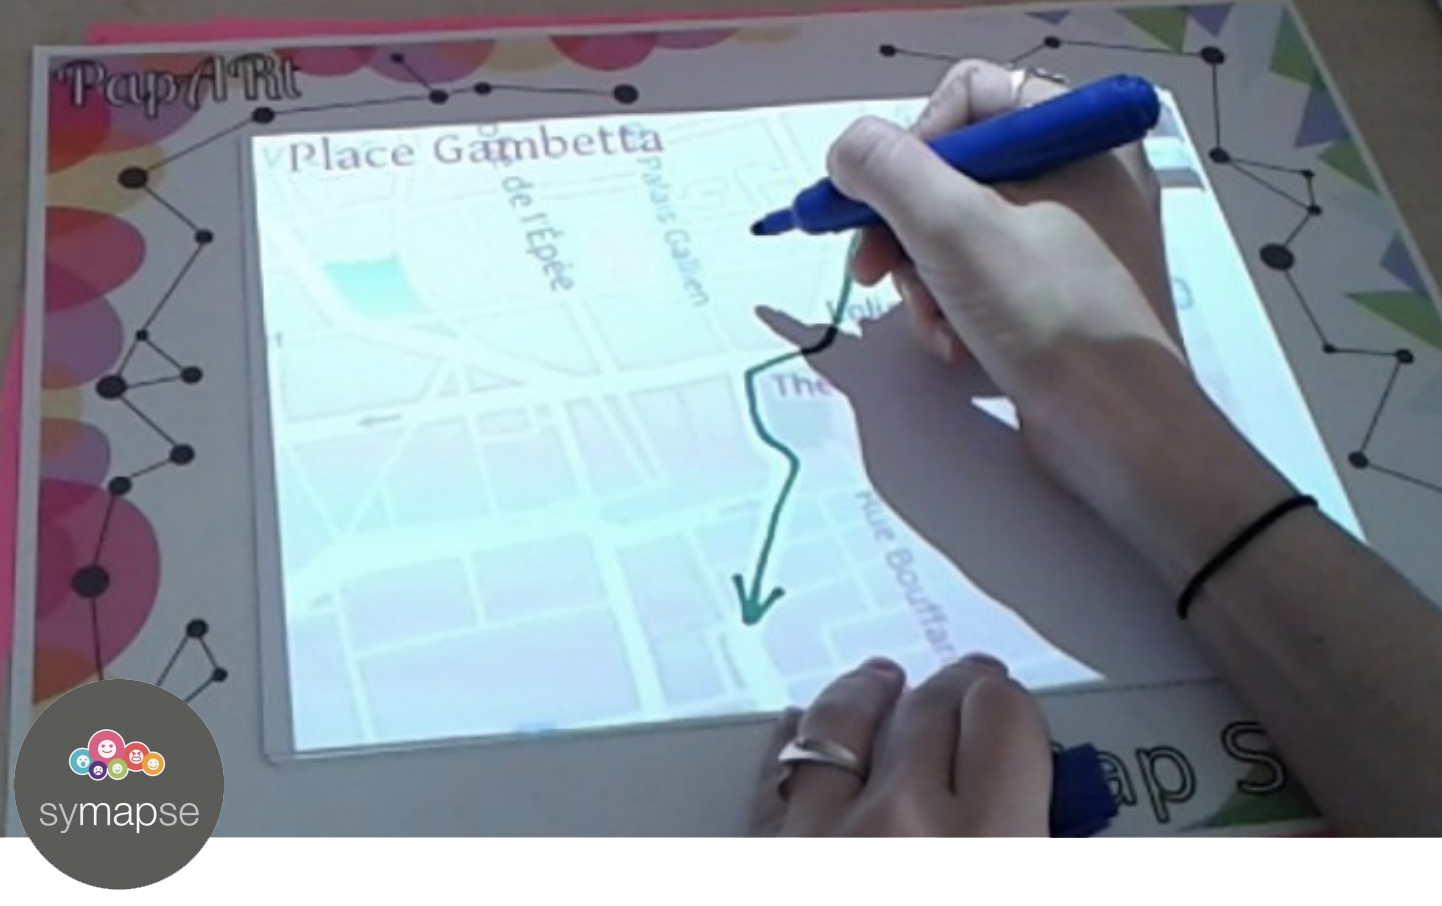 drawing on a paper map using Spatial Augmented Reality